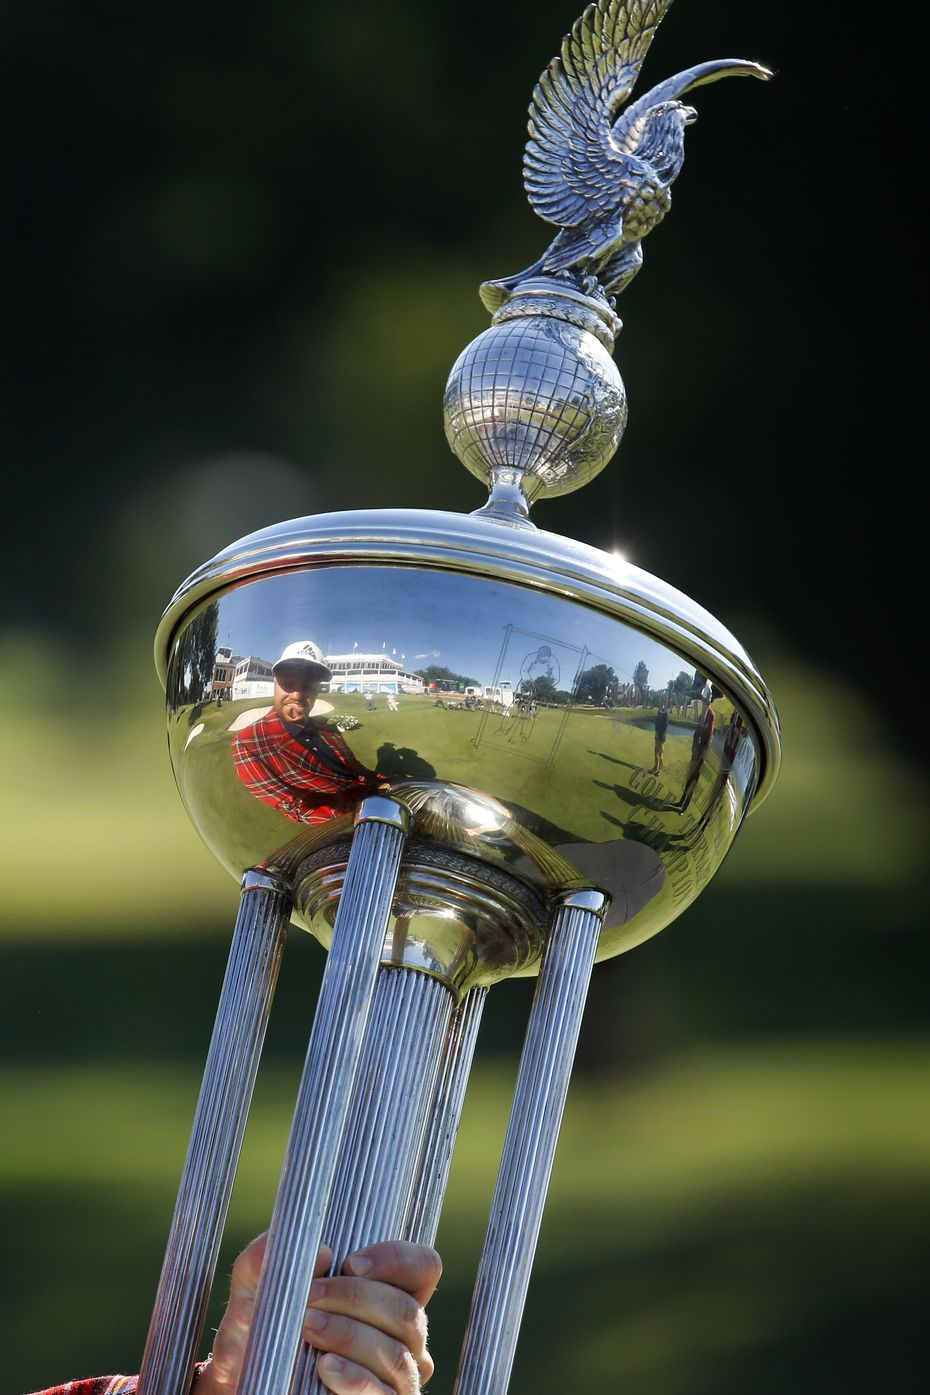 On the 18th green, PGA Tour golfer Daniel Berger looks at himself reflected in the winning Leonard Trophy after defeating Collin Morikawa in a one-hole playoff in the final round of the Charles Schwab Challenge at the Colonial Country Club in Fort Worth, Sunday, June 14, 2020.